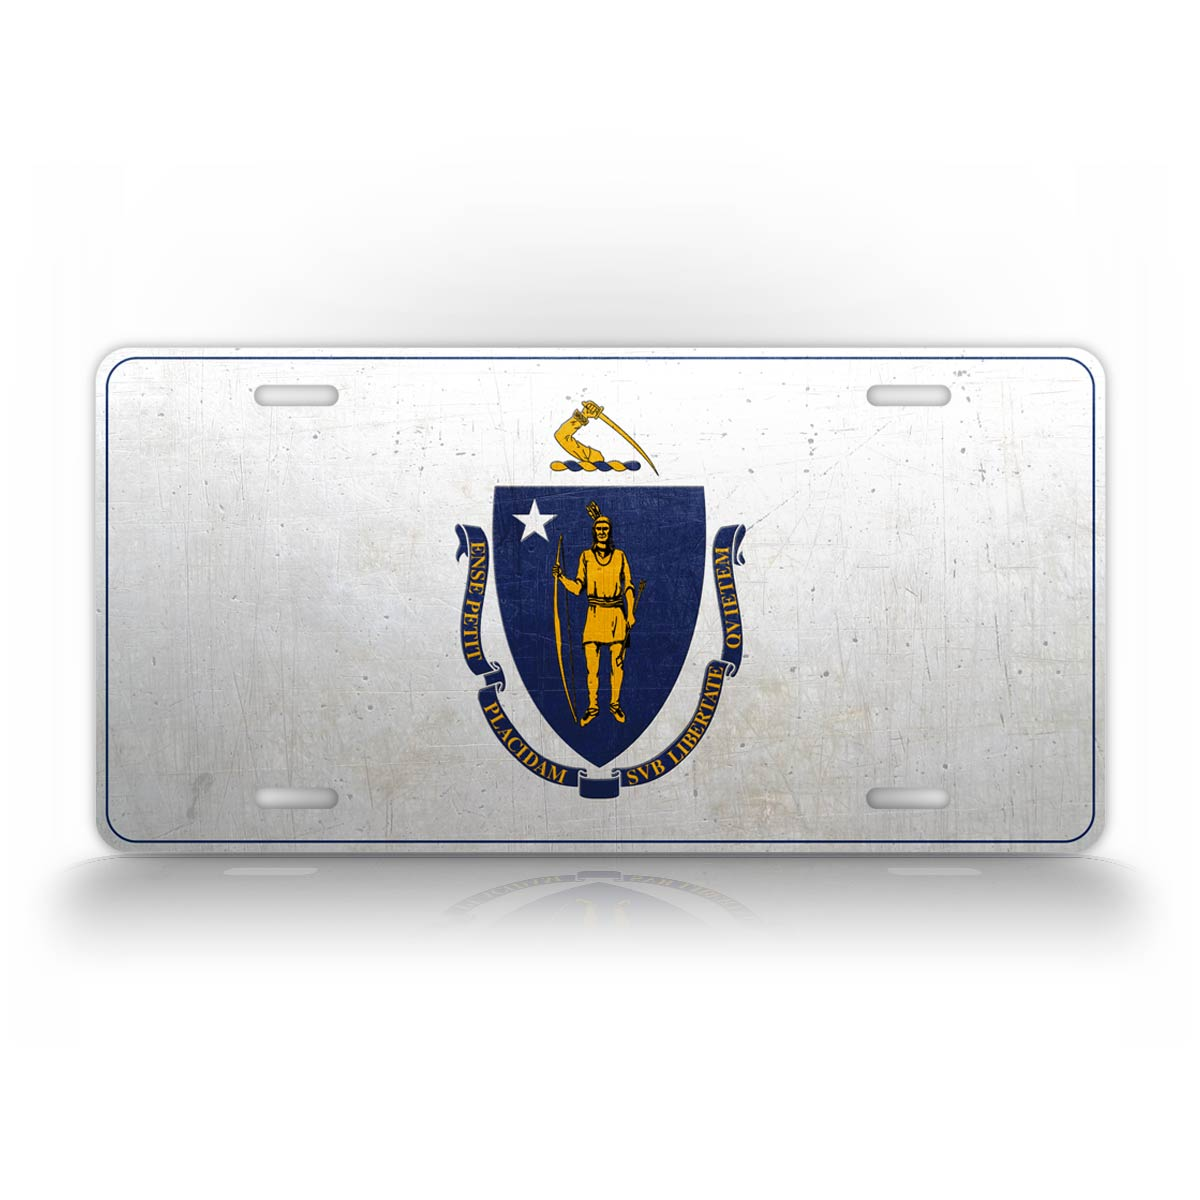 Massachusetts State Flag Weathered Metal License Plate